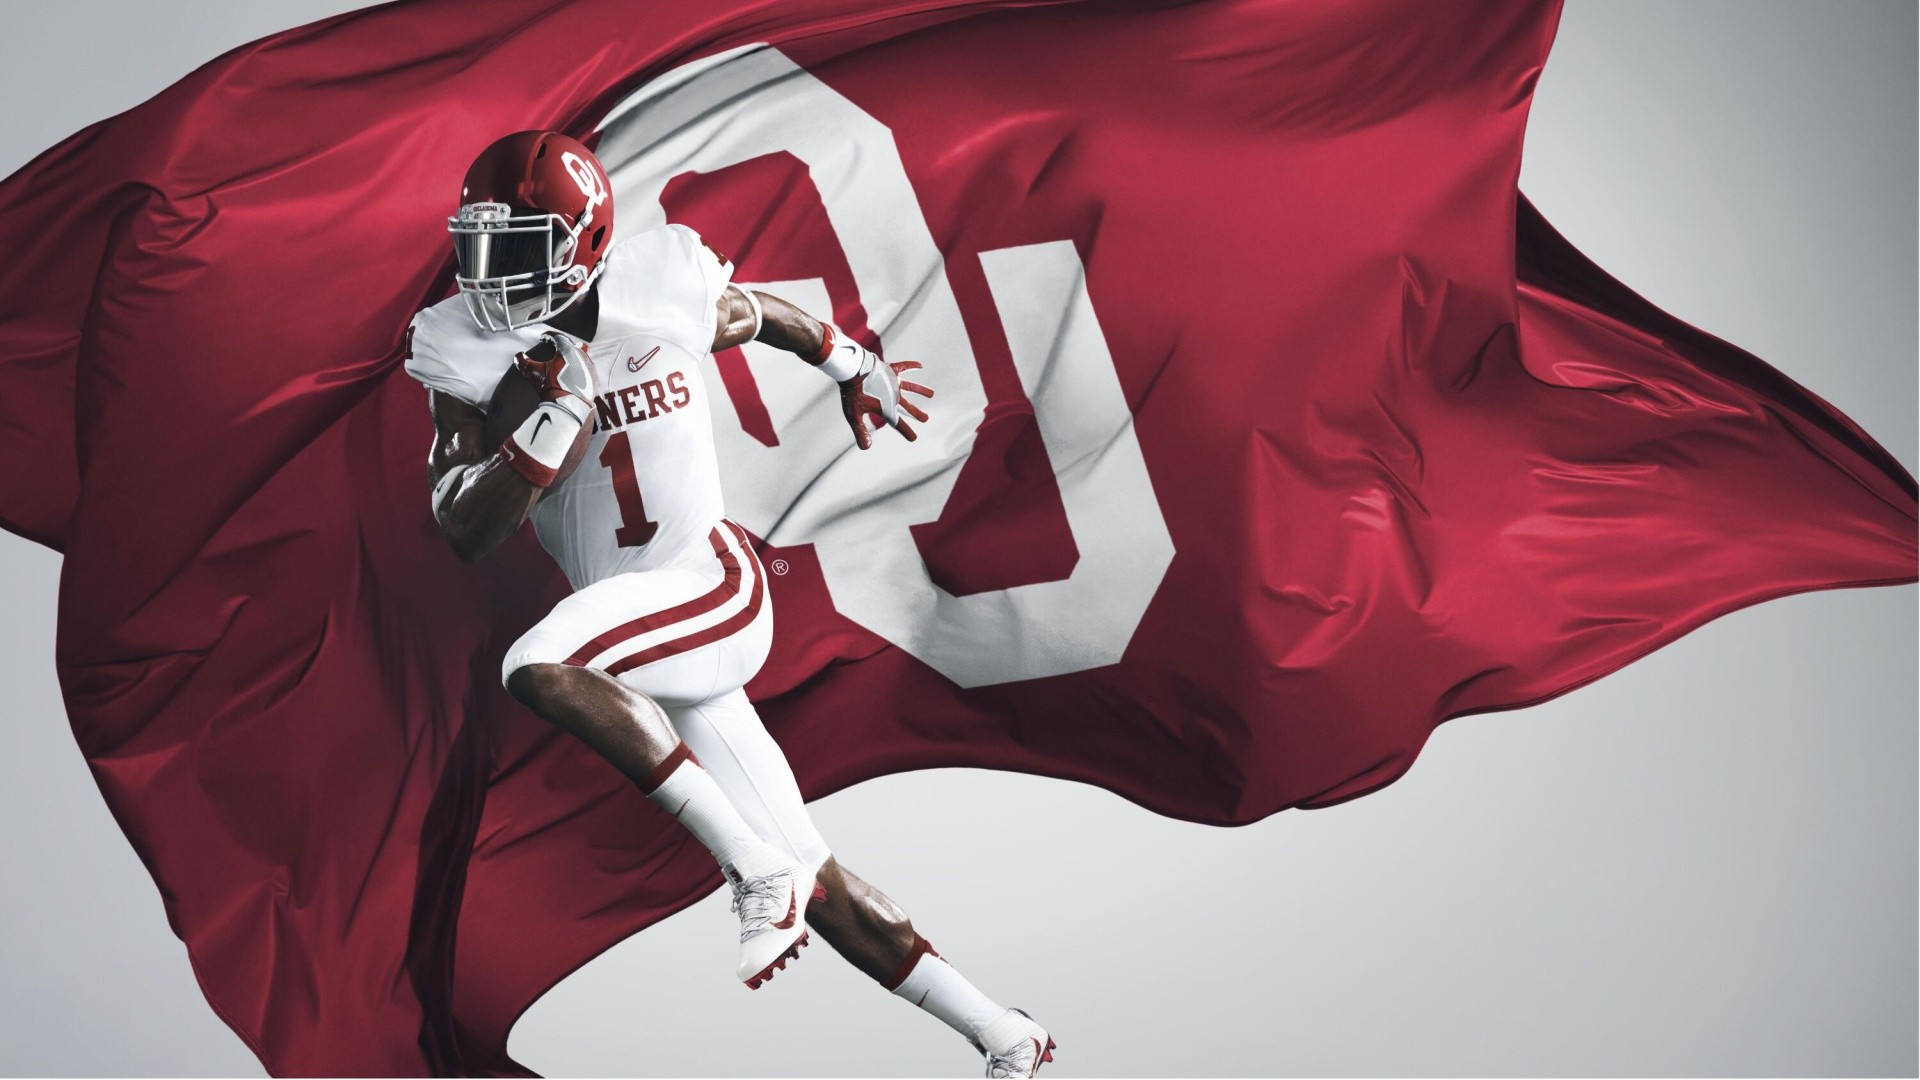 Nike Oklahoma Sooners Uniform Wallpaper   New HD Wallpapers 1920x1080